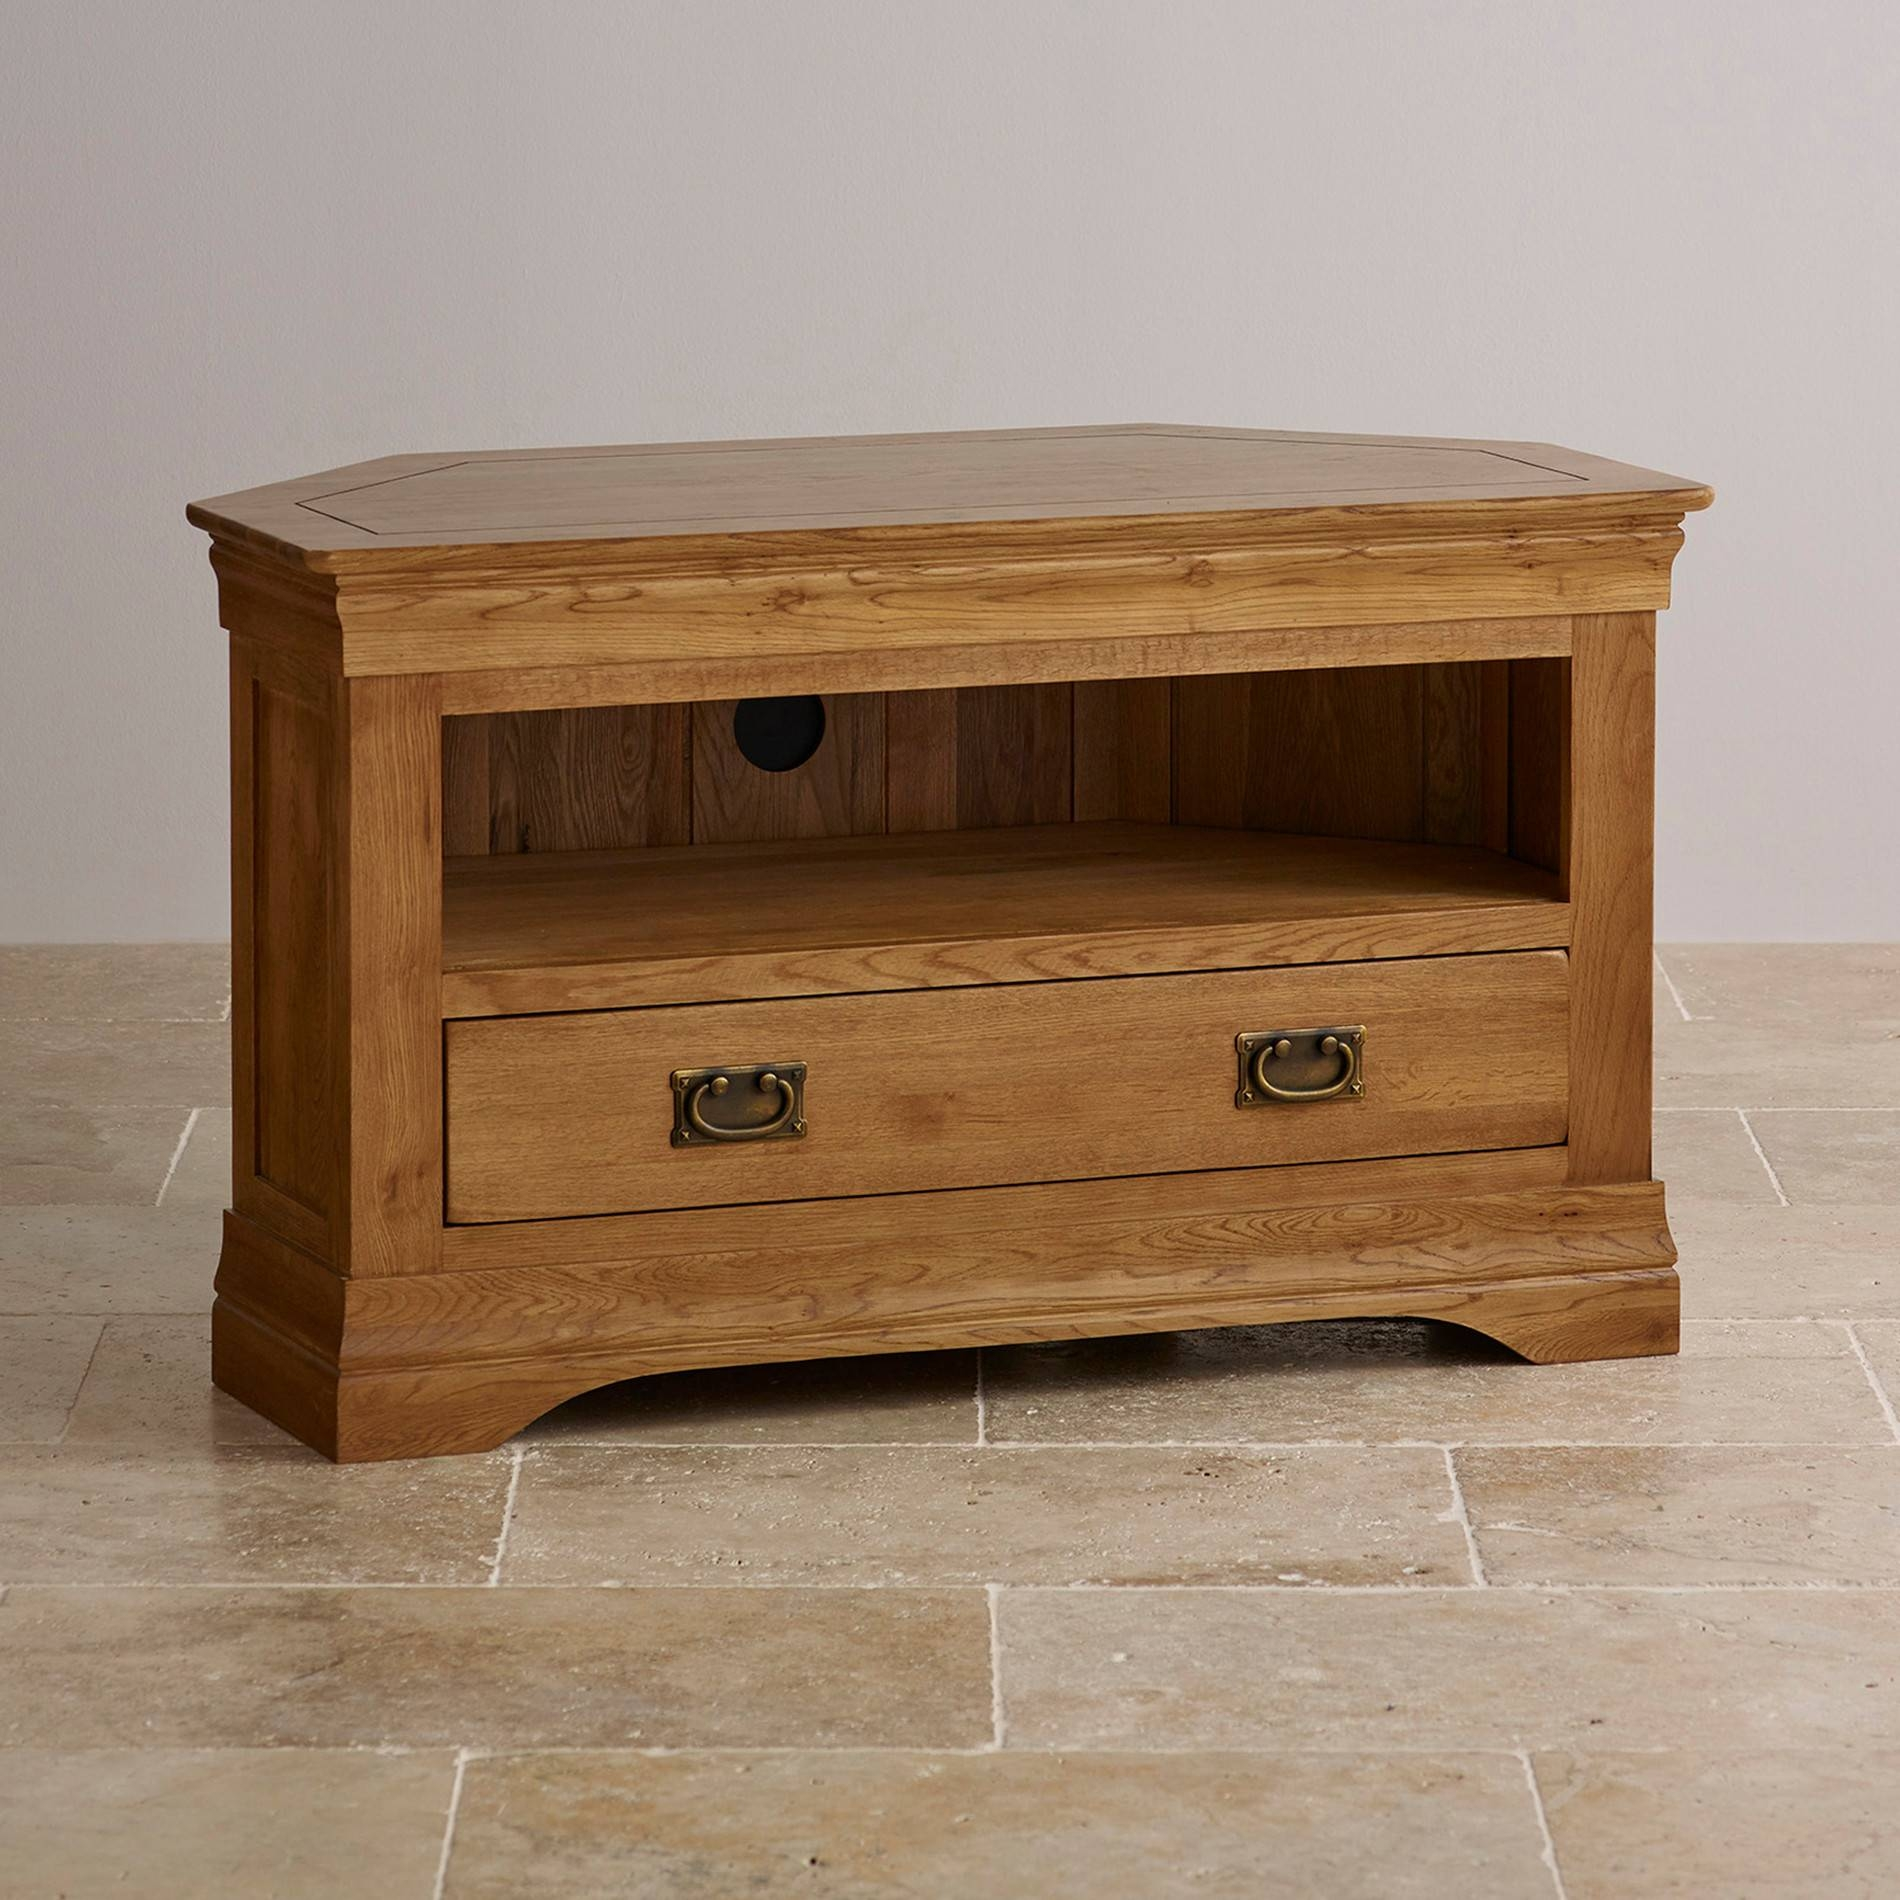 French Farmhouse Corner Tv Unit | Solid Oak | Oak Furniture Land throughout Rustic Corner Tv Cabinets (Image 3 of 15)